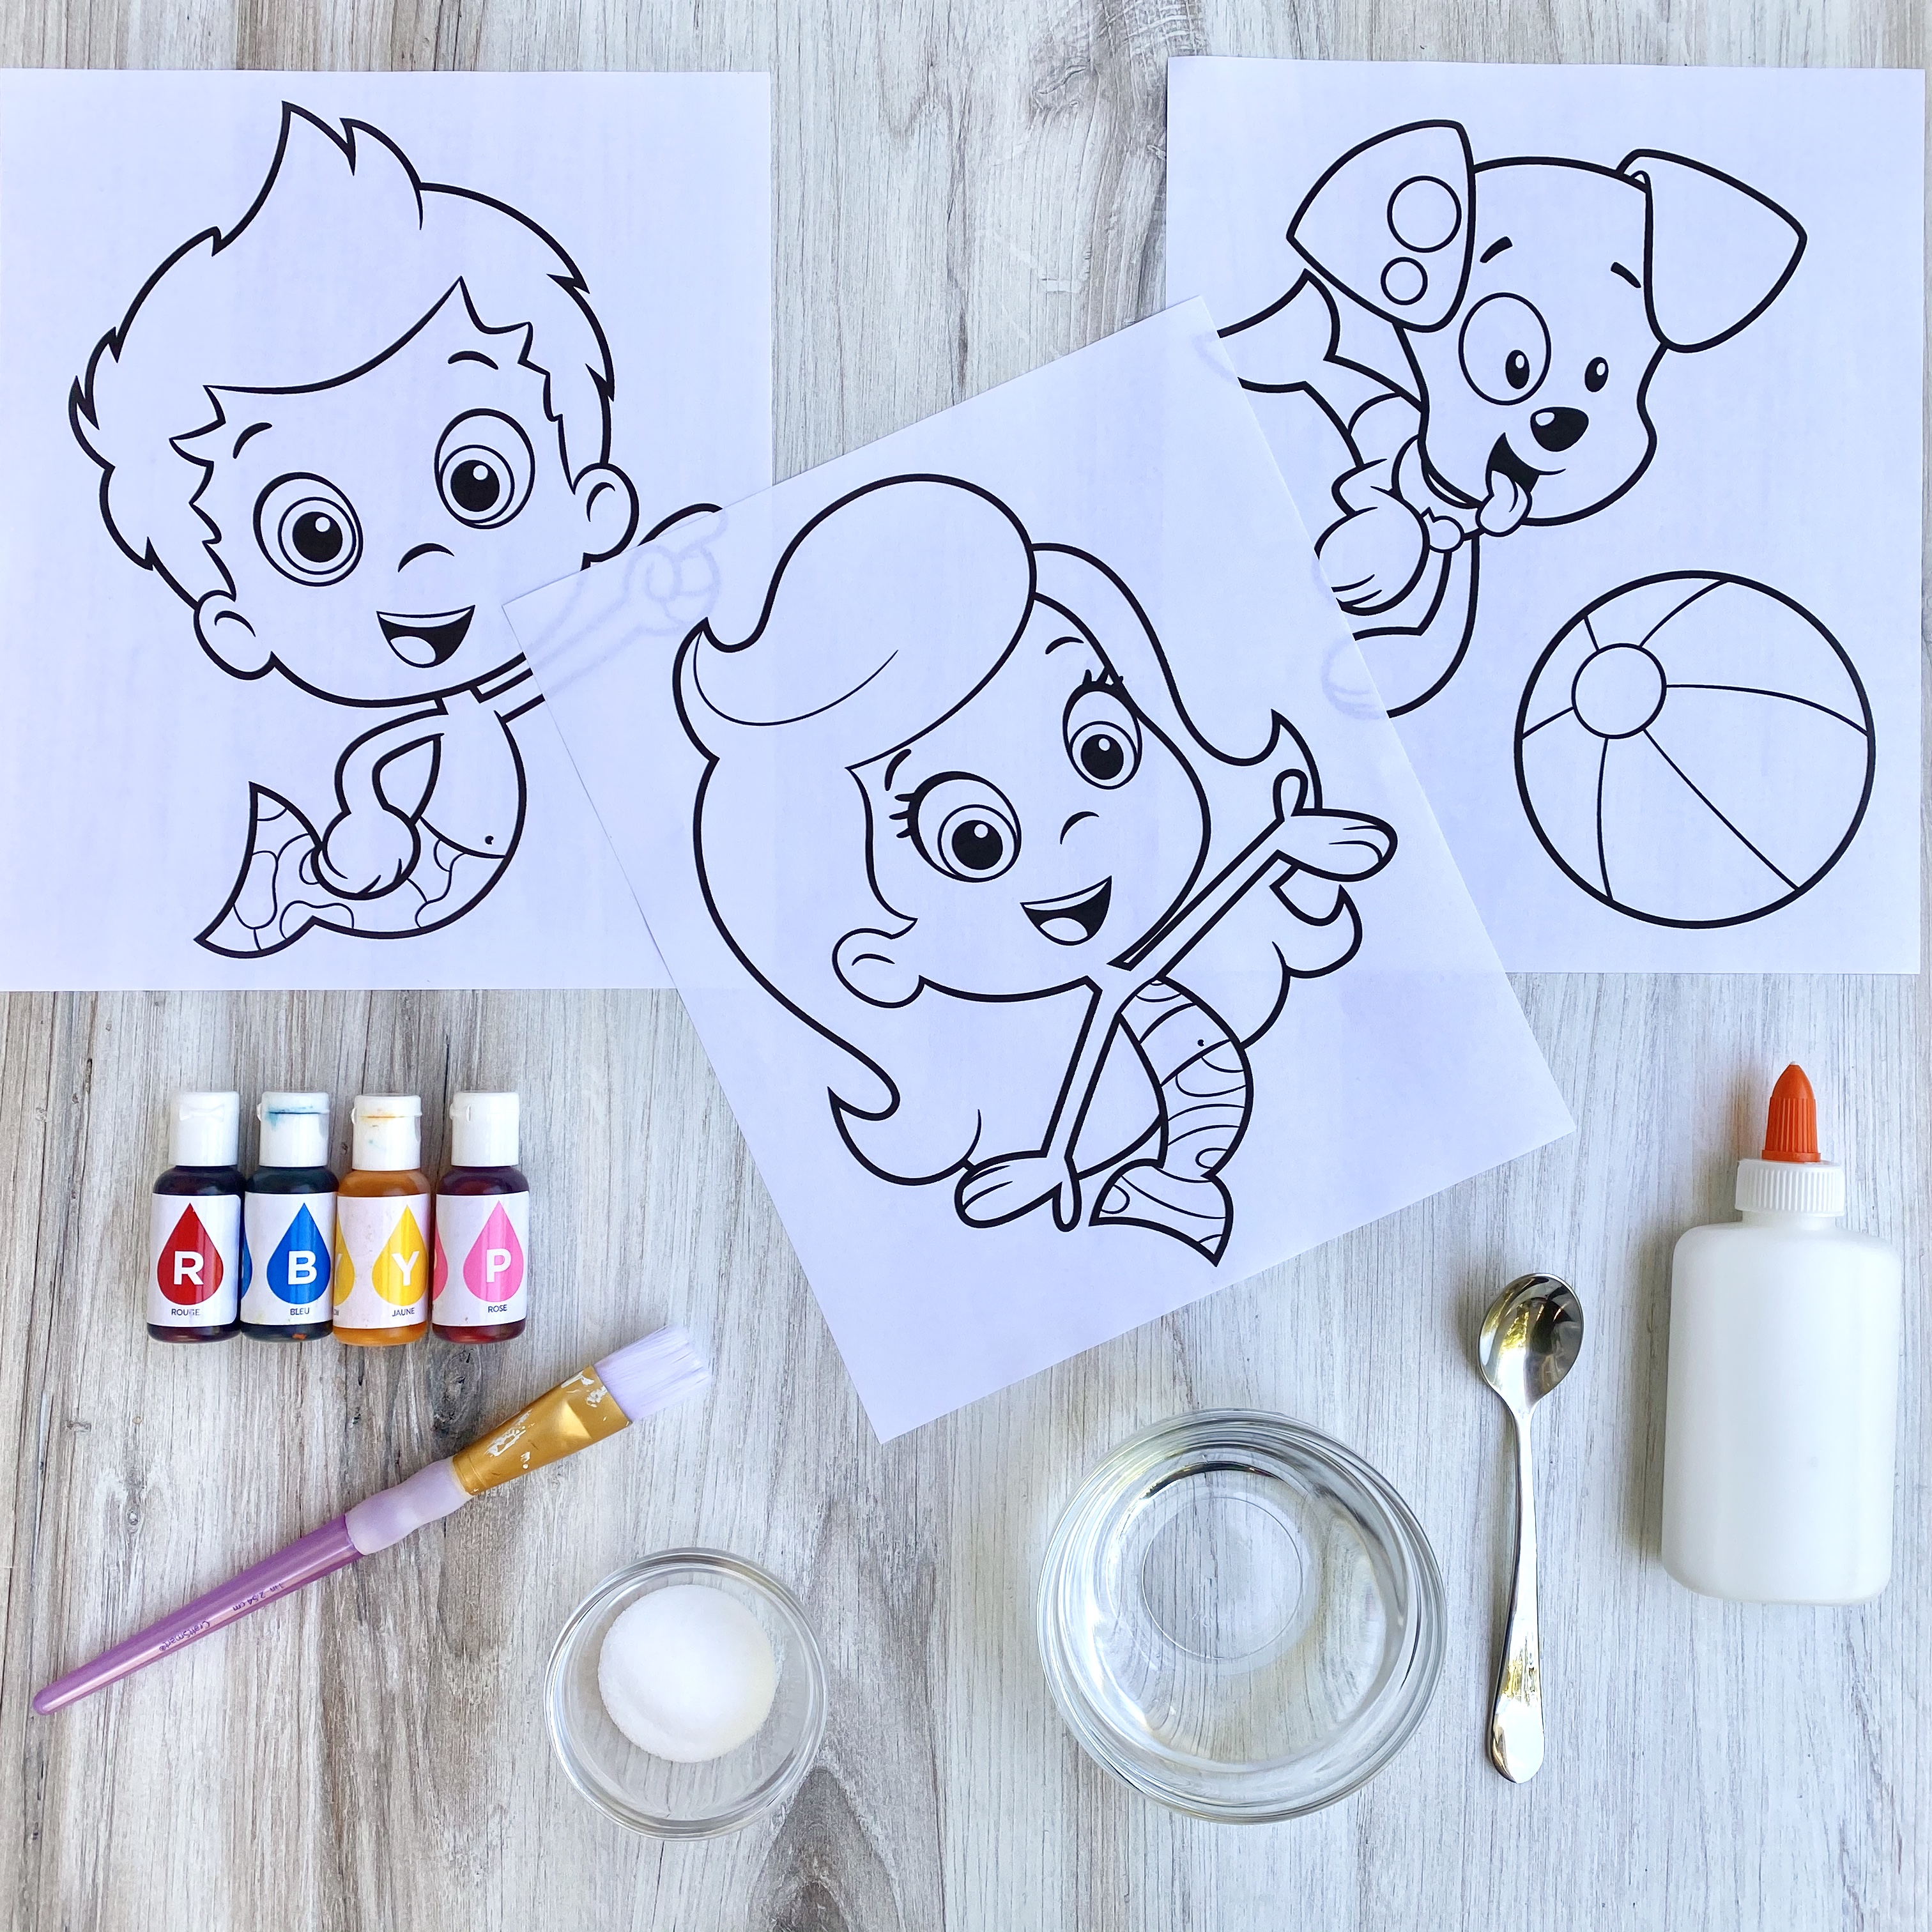 Bubble Guppies Salt Painting Materials